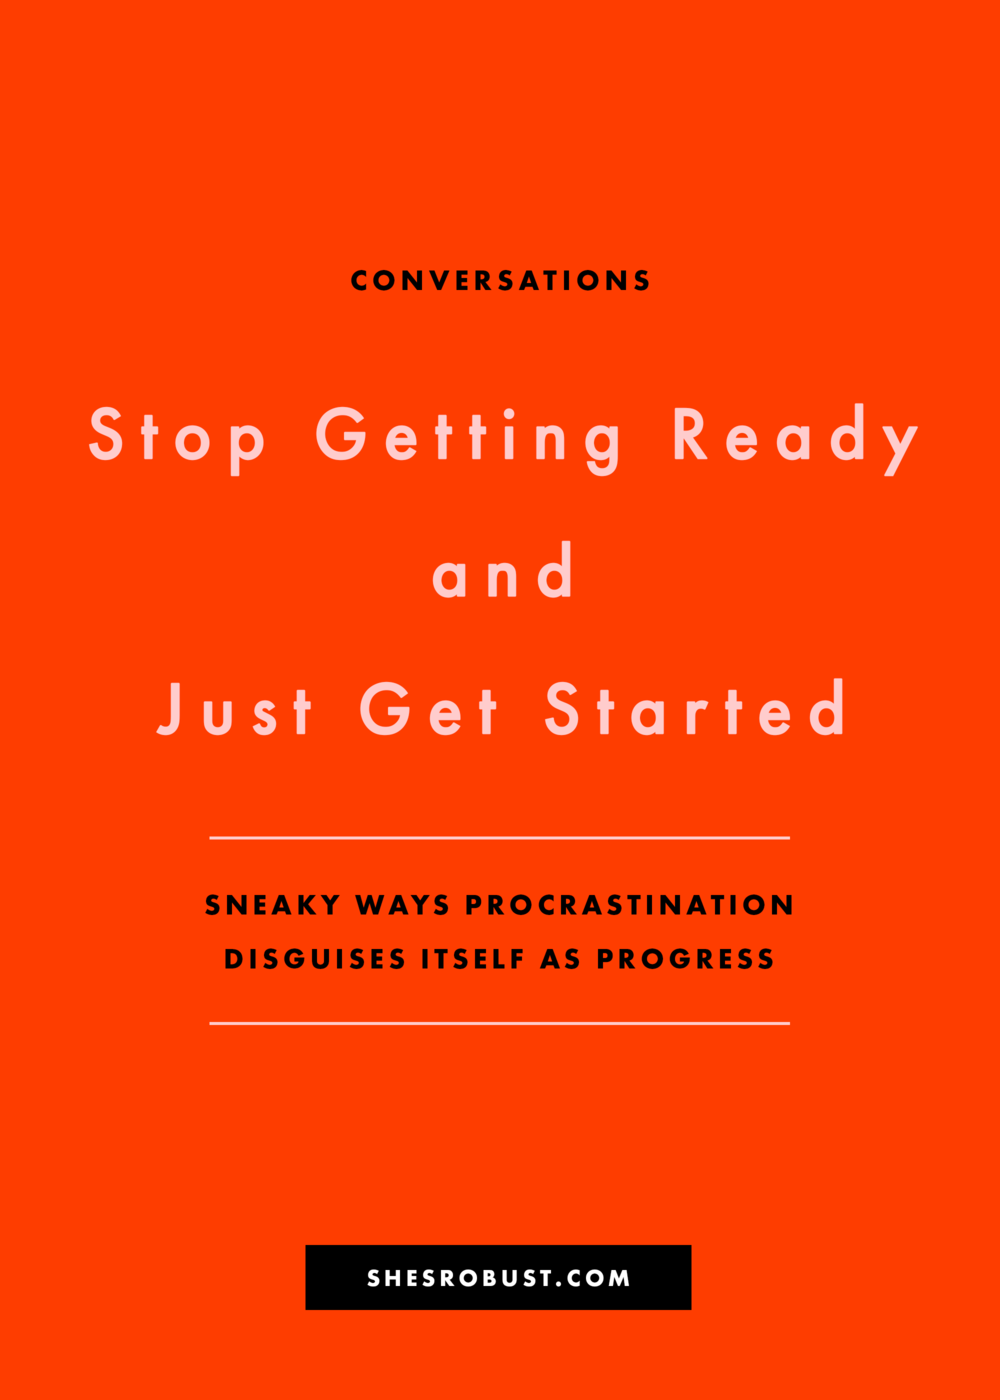 The sneaky ways procrastination can disguise itself as progress